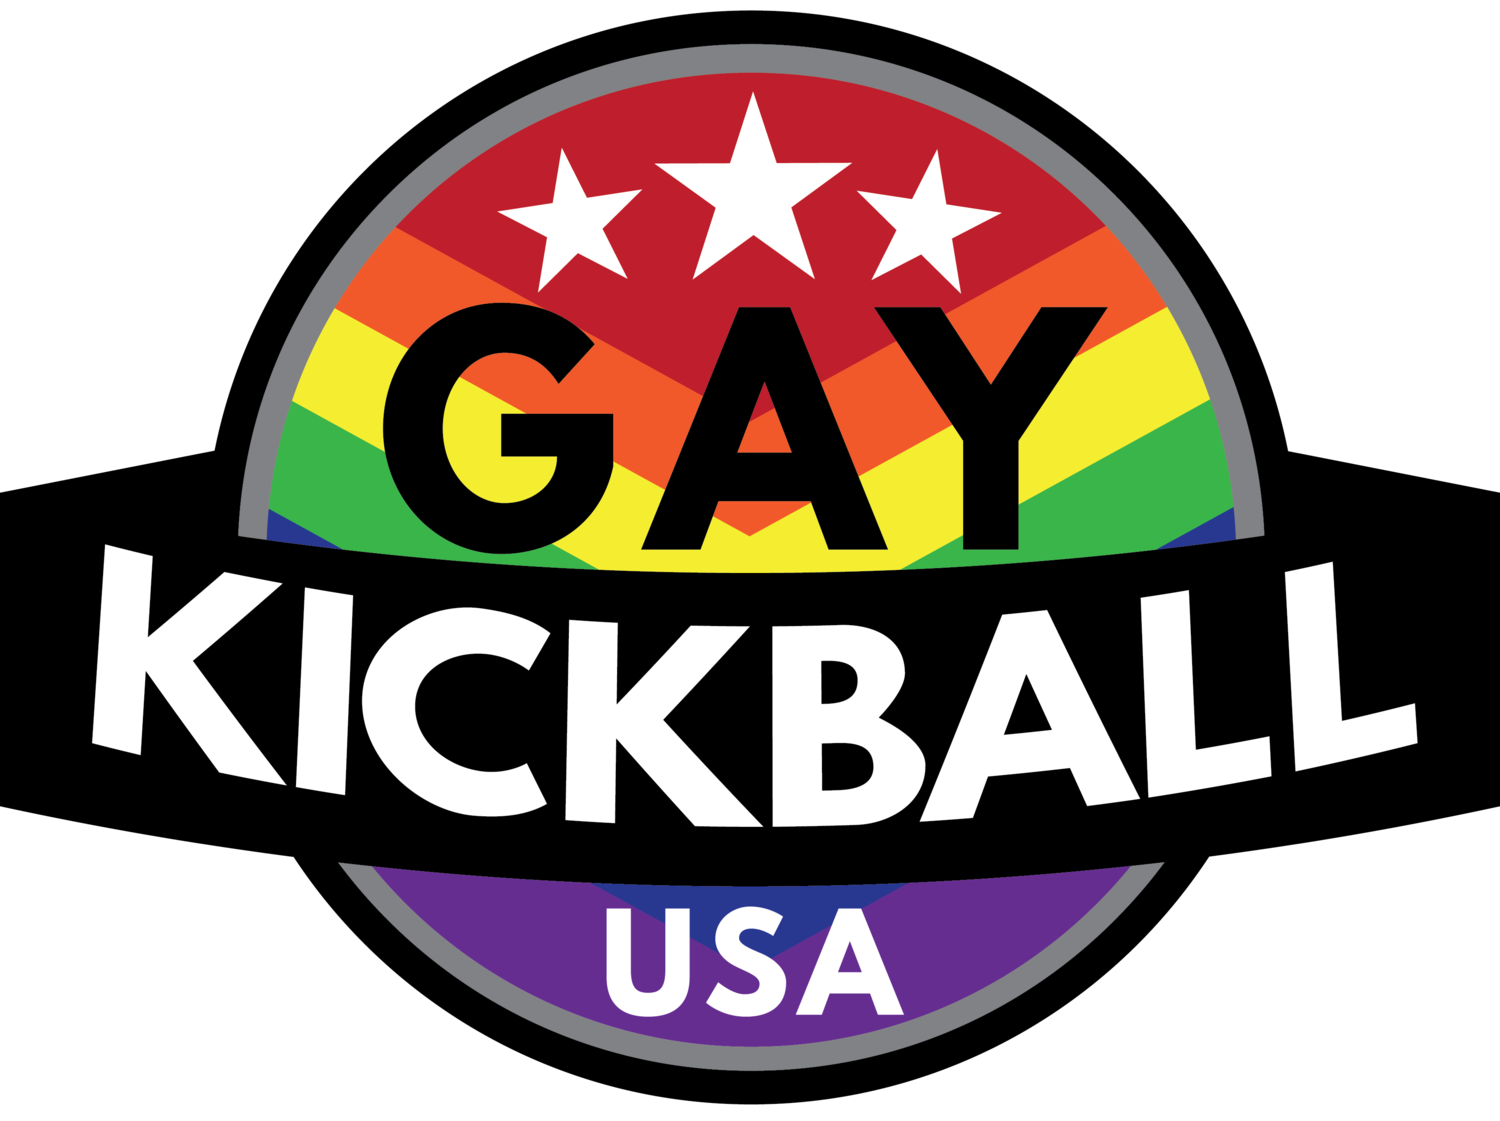 Gay Kickball USA